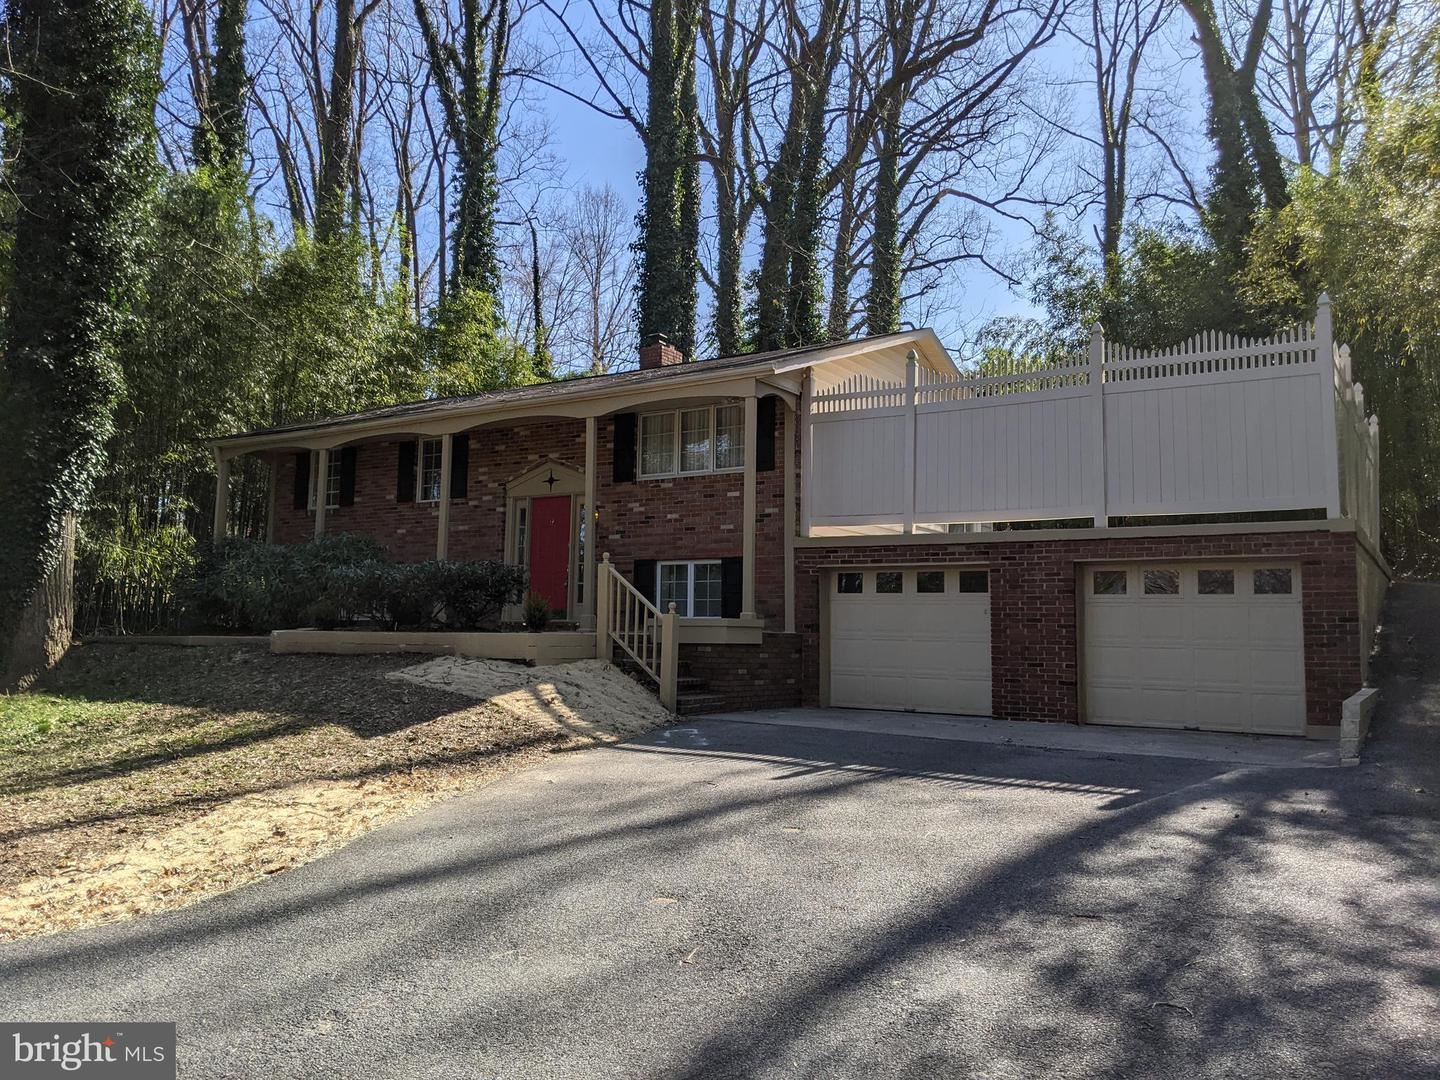 1350 RITCHIE HWY, Arnold, MD 21012 - MLS#: MDAA459084